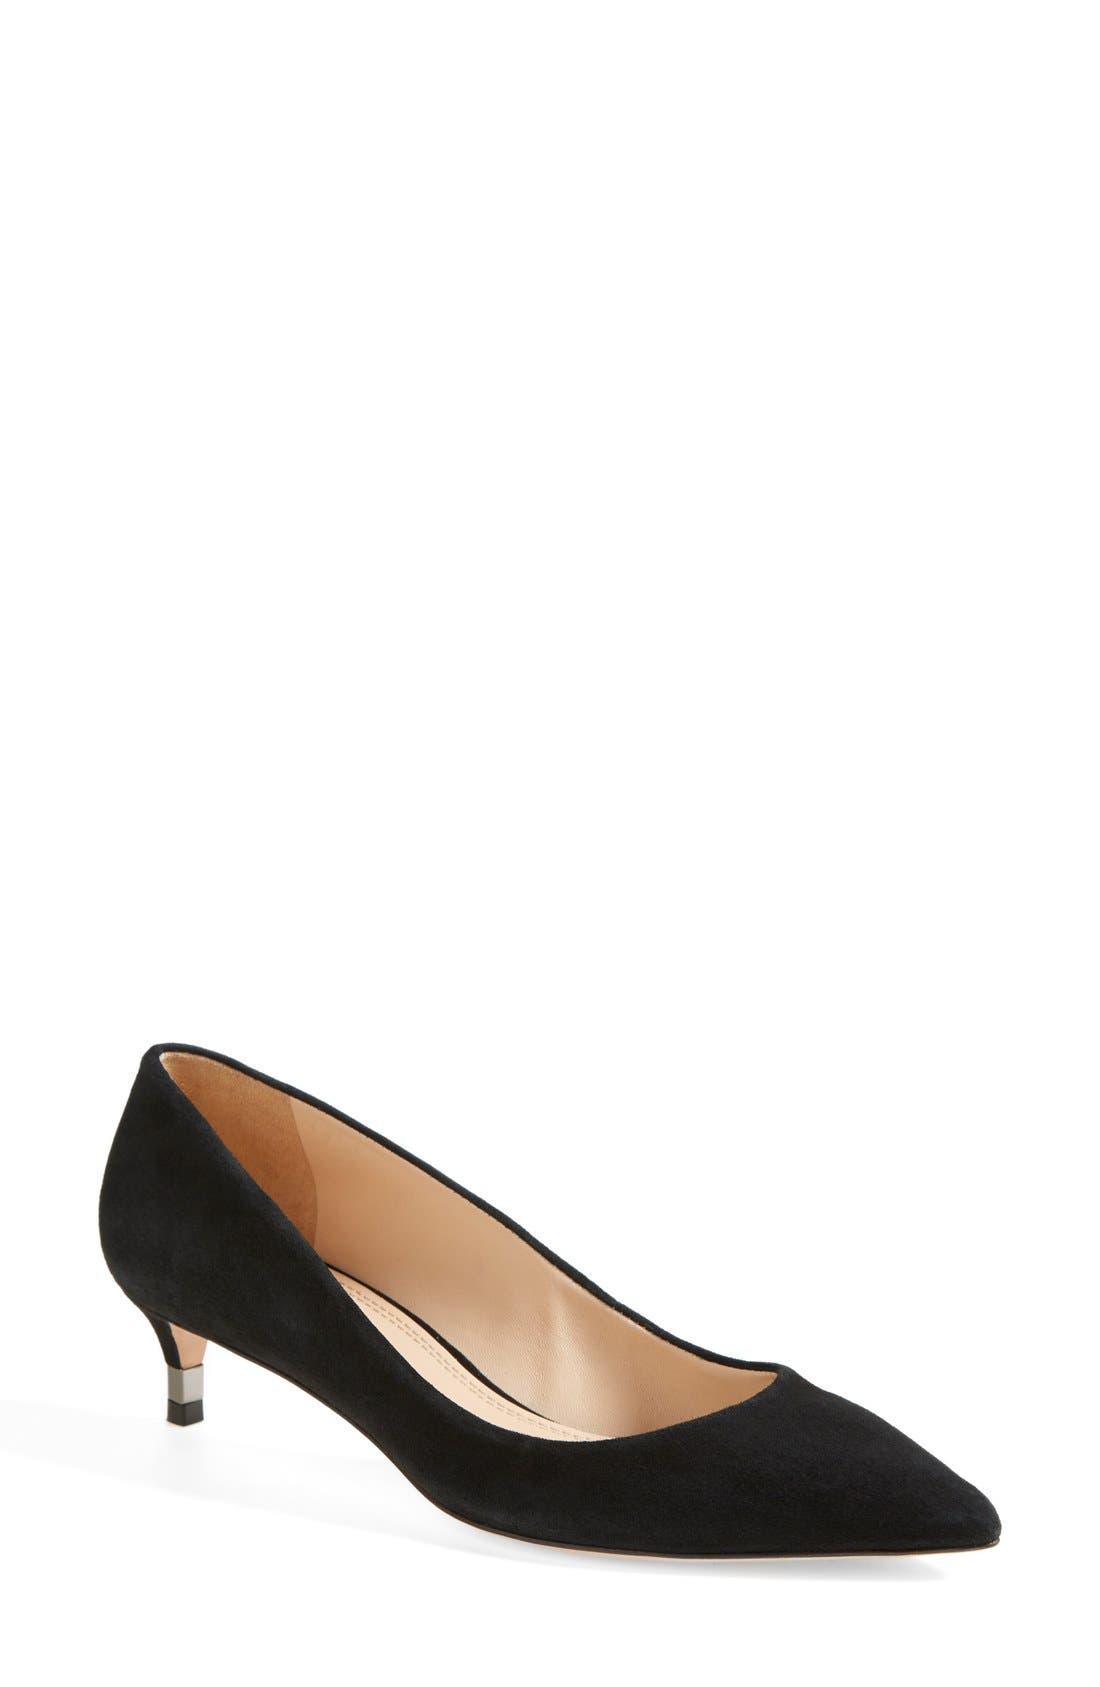 Main Image - Tory Burch 'Greenwich' Suede Pointy Toe Pump (Women)